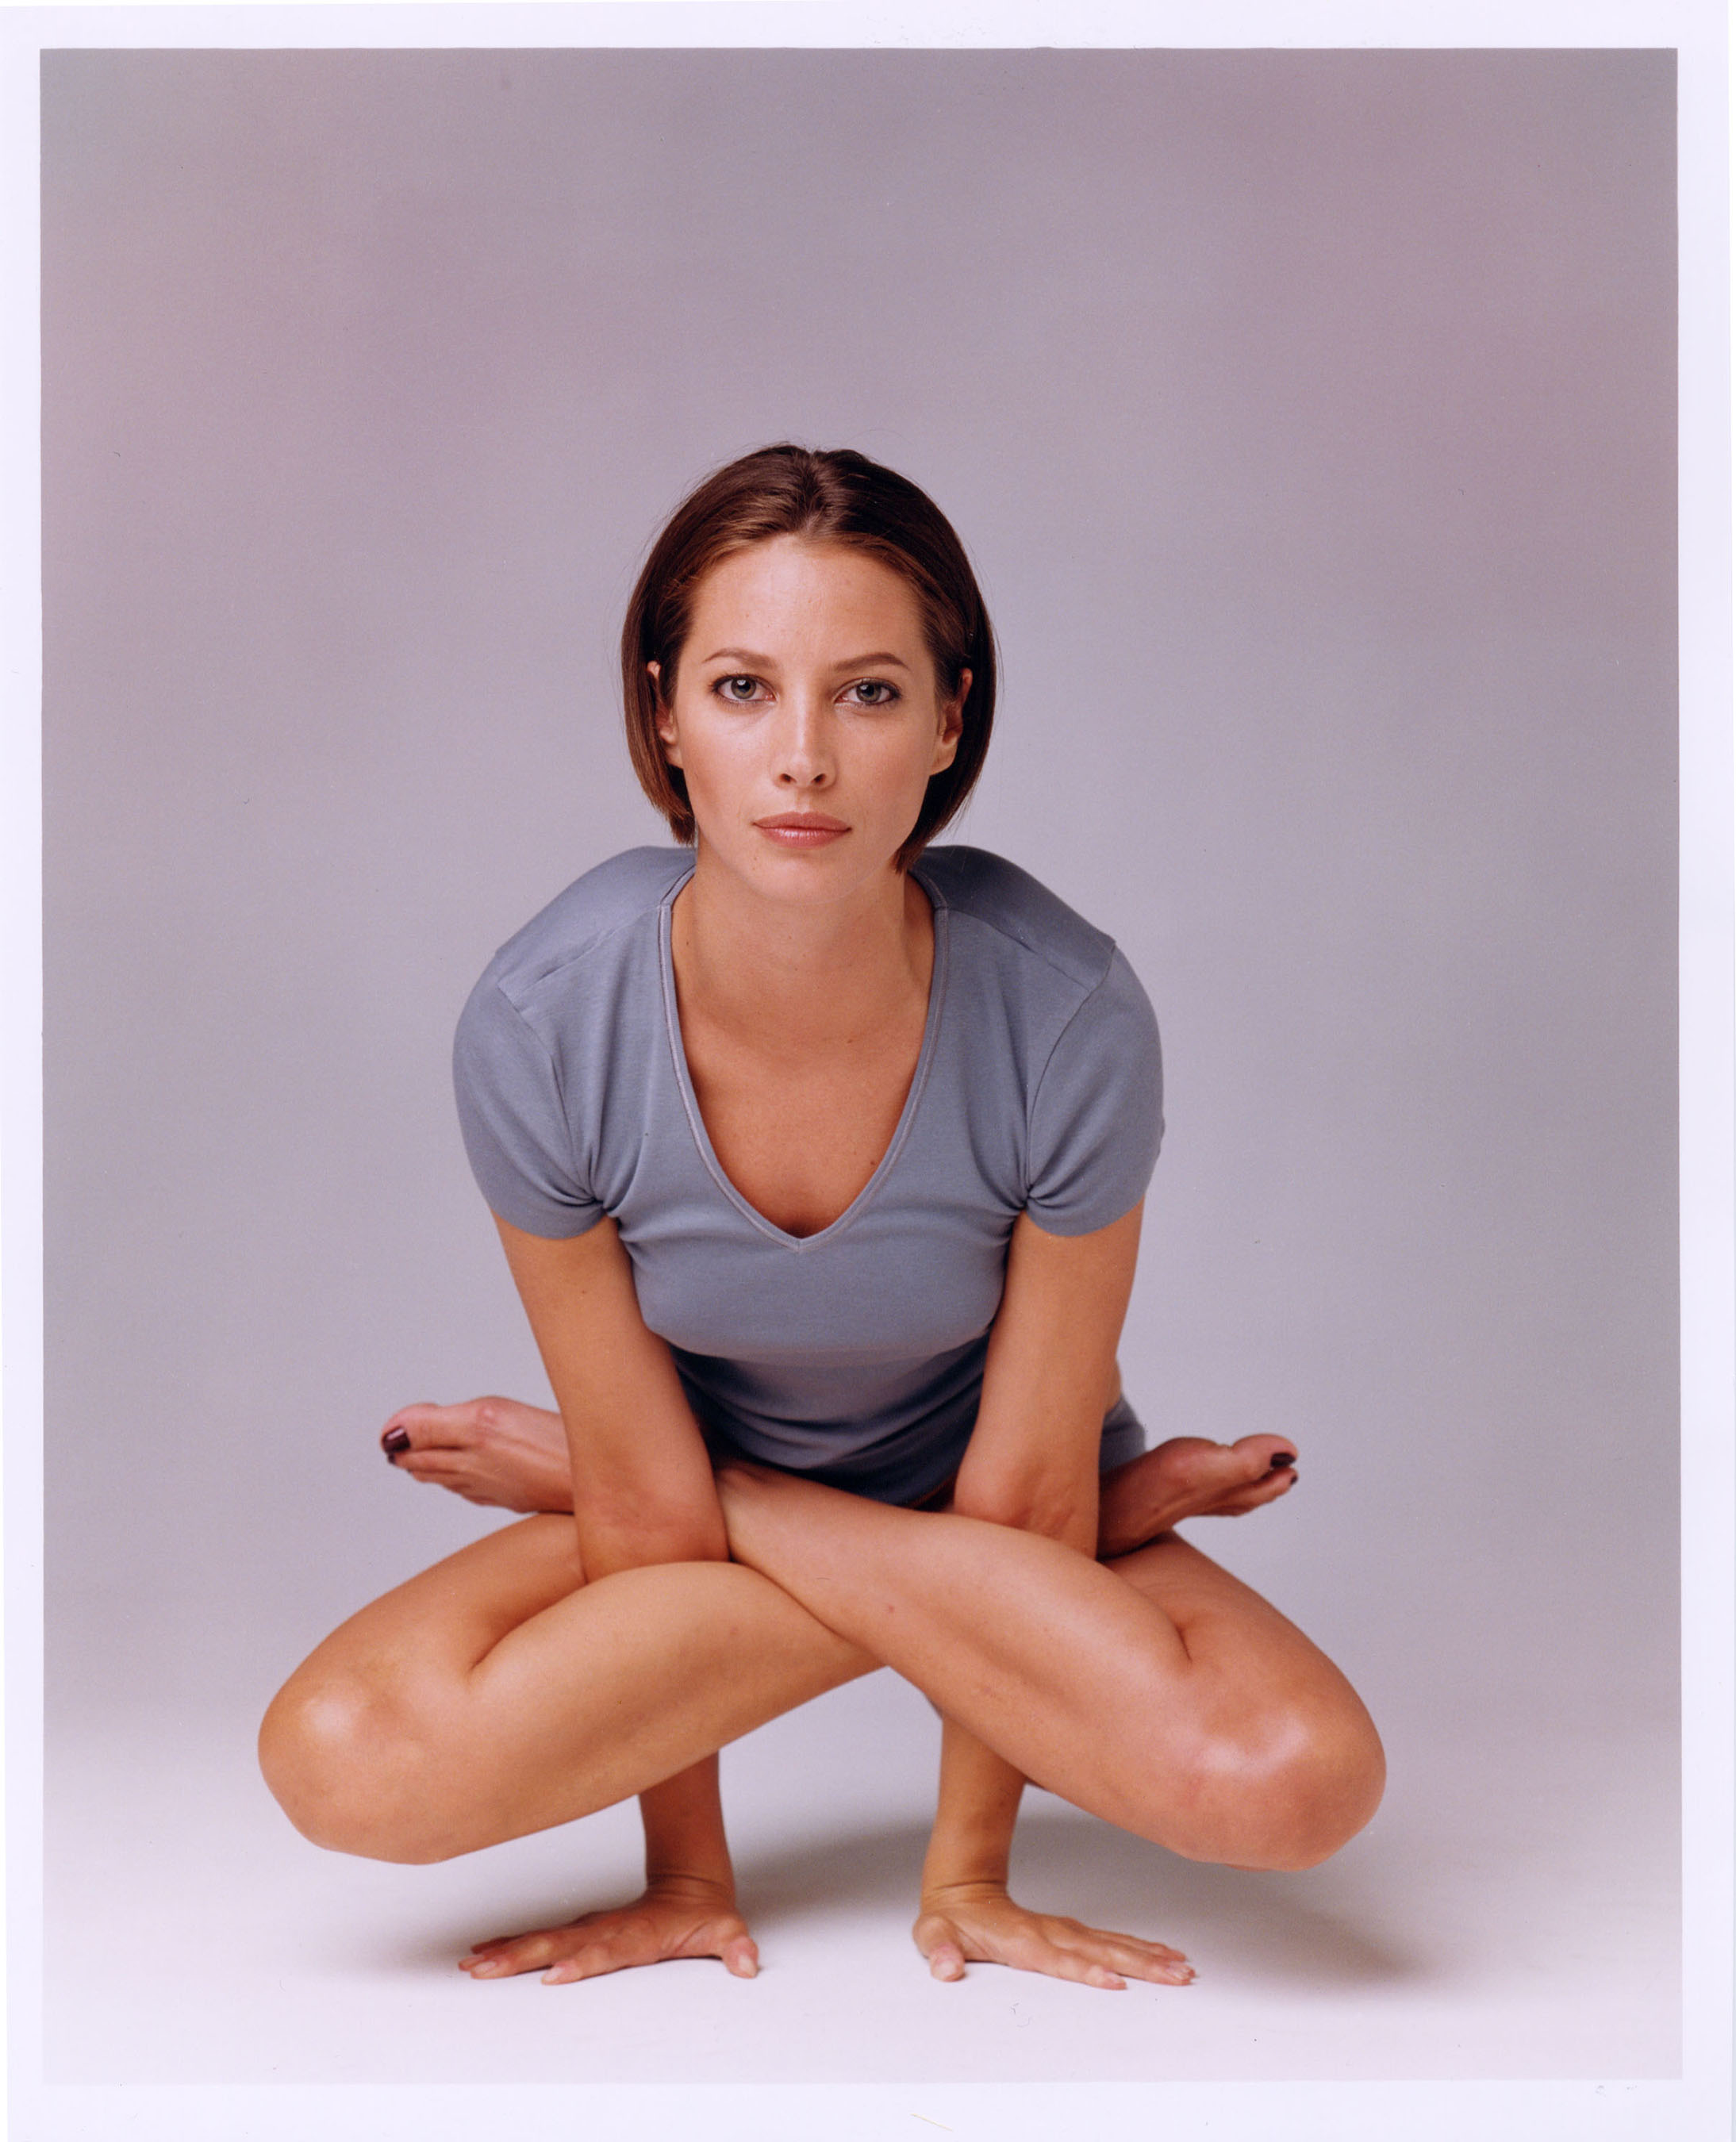 christy turlington ambassadrice imedeen. Black Bedroom Furniture Sets. Home Design Ideas